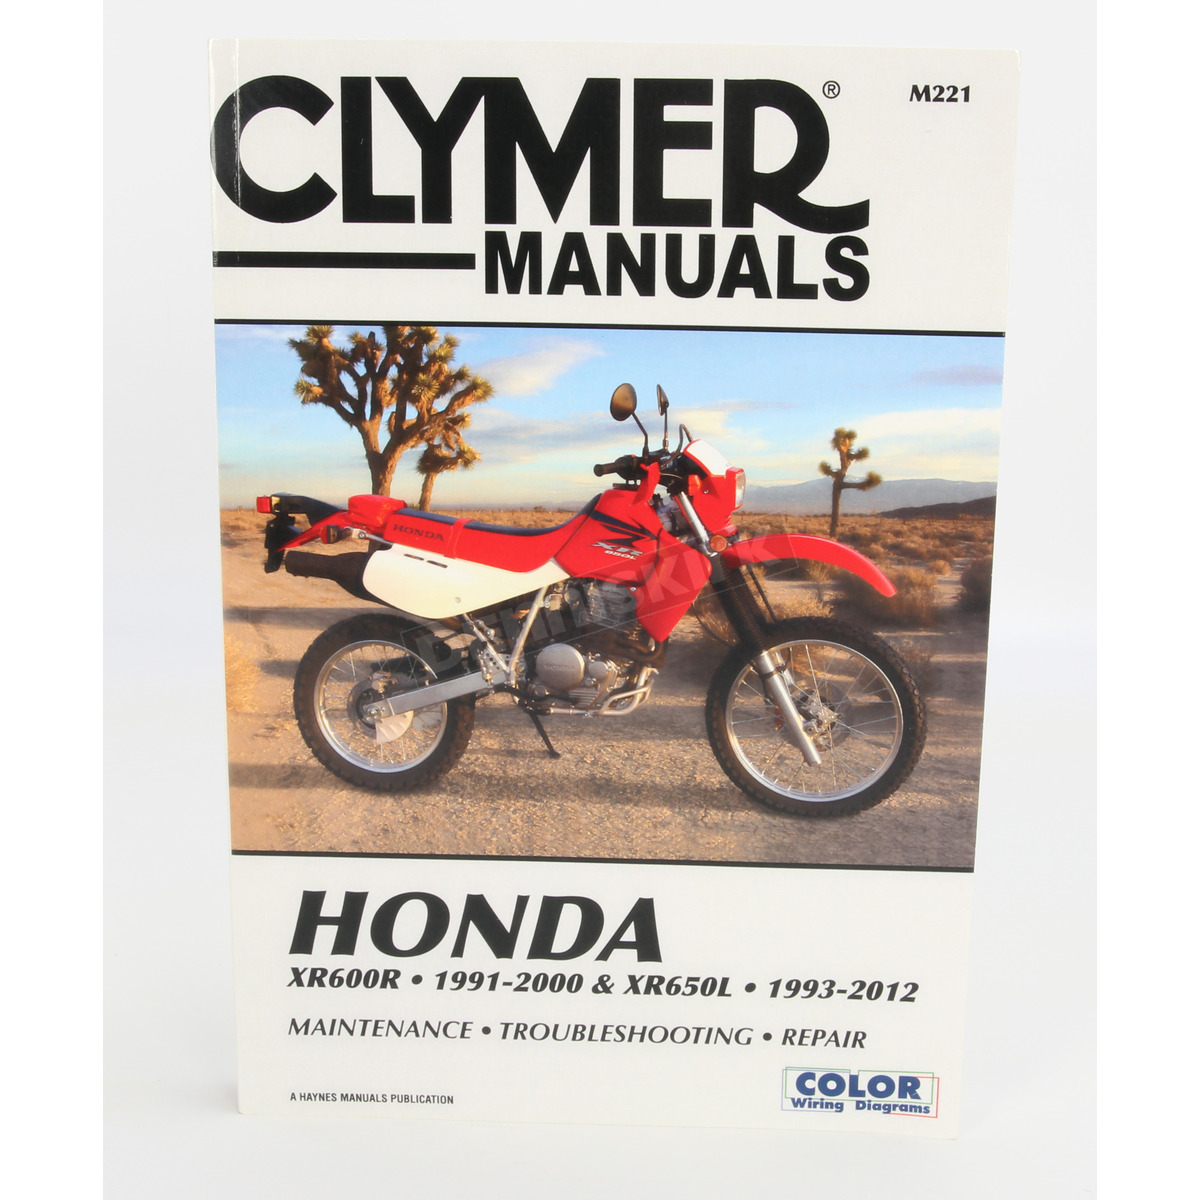 Clymer Honda Repair Manual M221 Dirt Bike Motorcycle Dennis Kirk Xr650l Wiring Diagram 2005